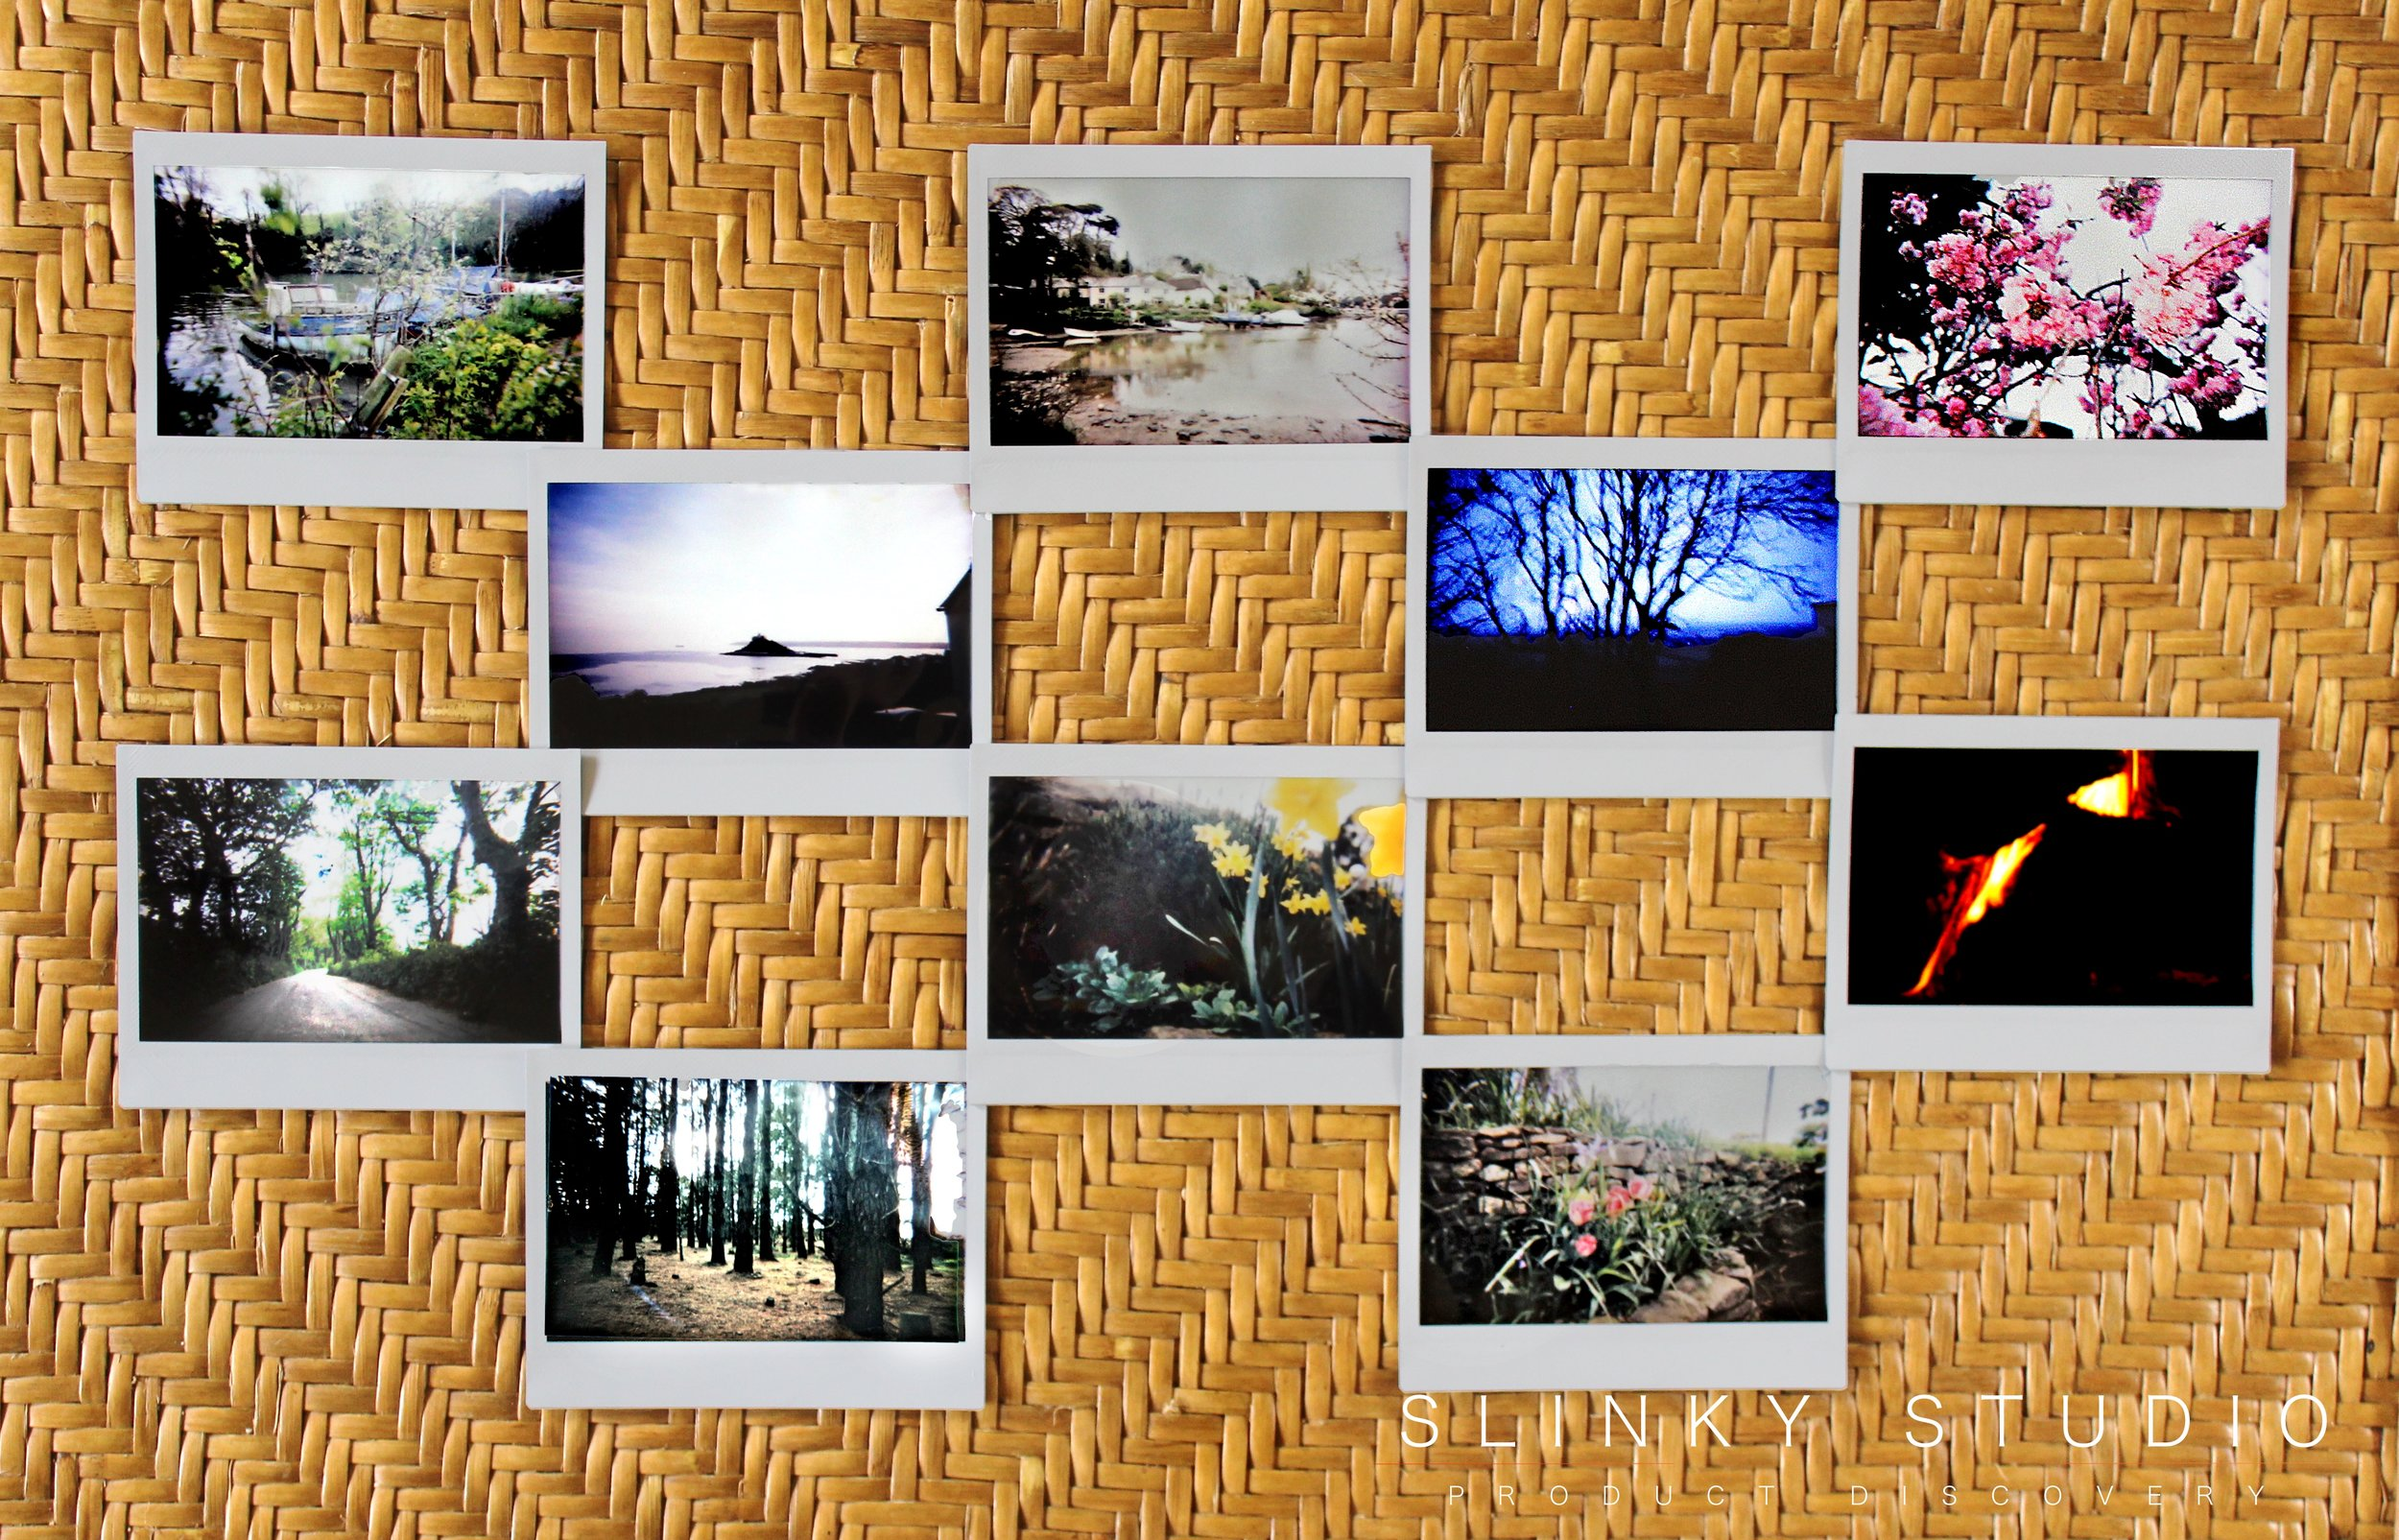 Lomography Lomo'Instant Wide Camera Instant Photos Results Quality Photography Outdoors.jpg